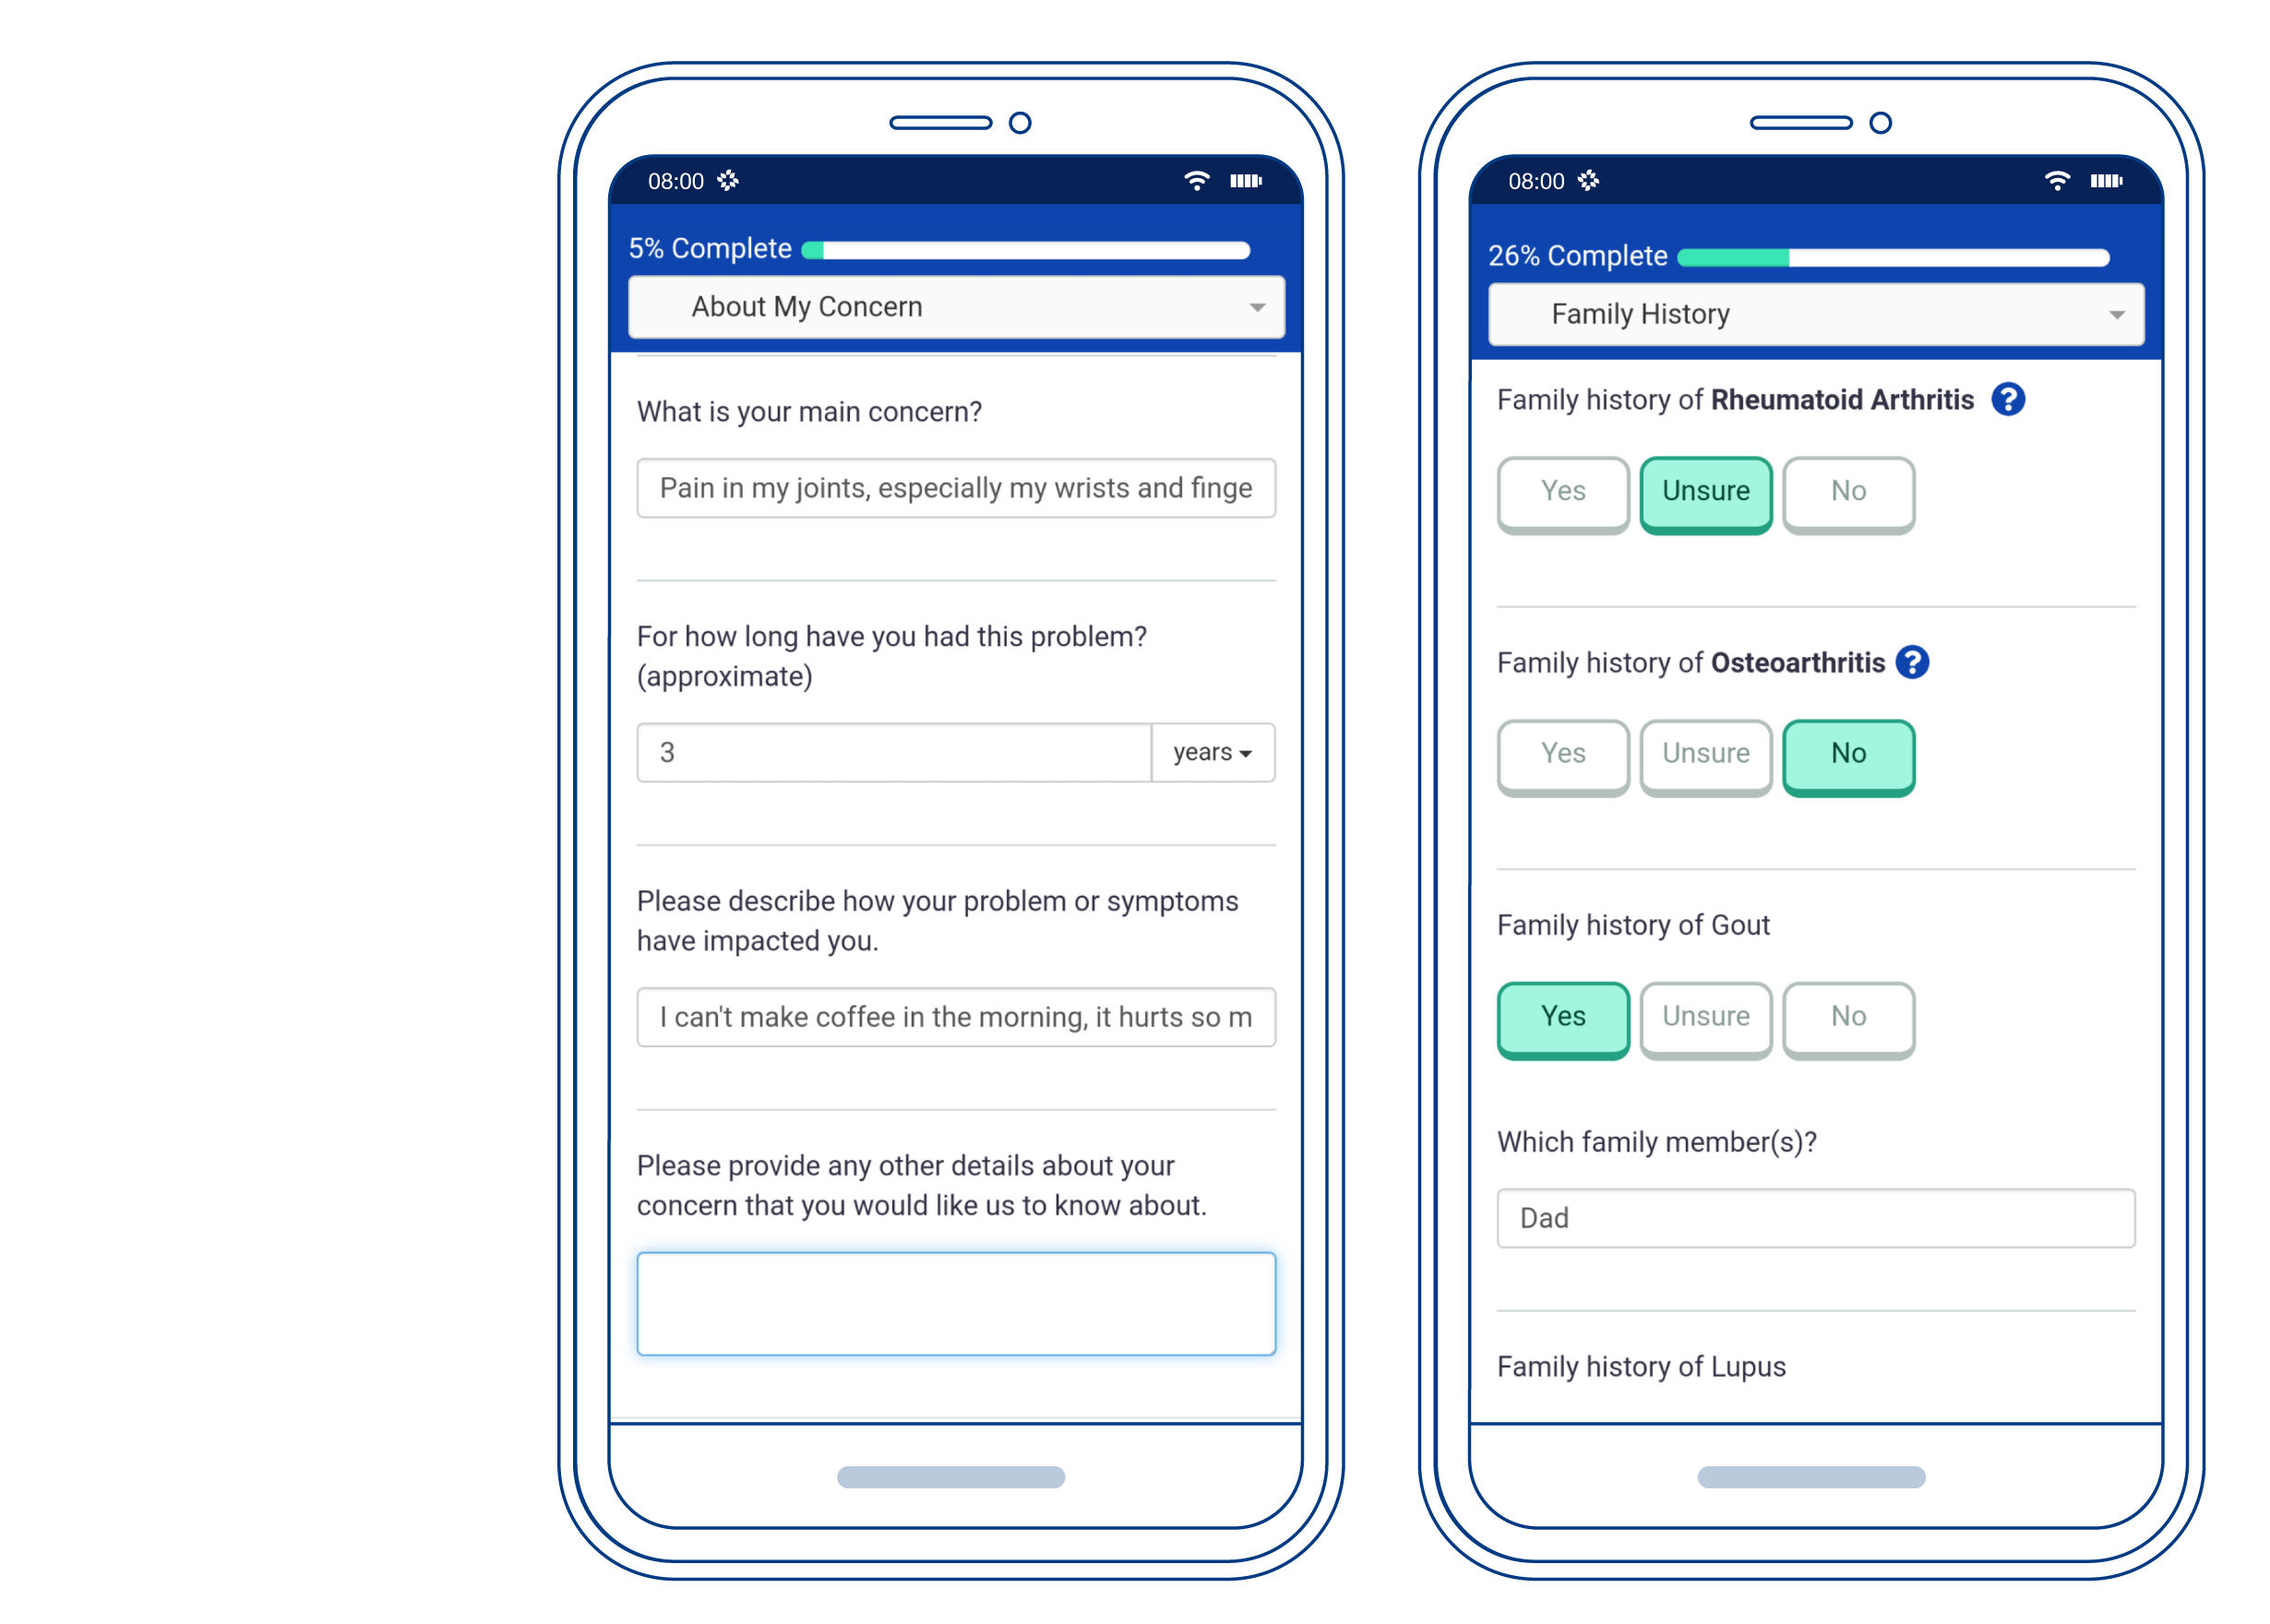 Patient-friendly forms - Our intake forms have built-in help and dynamic questions to get the full patient story ahead of visits.